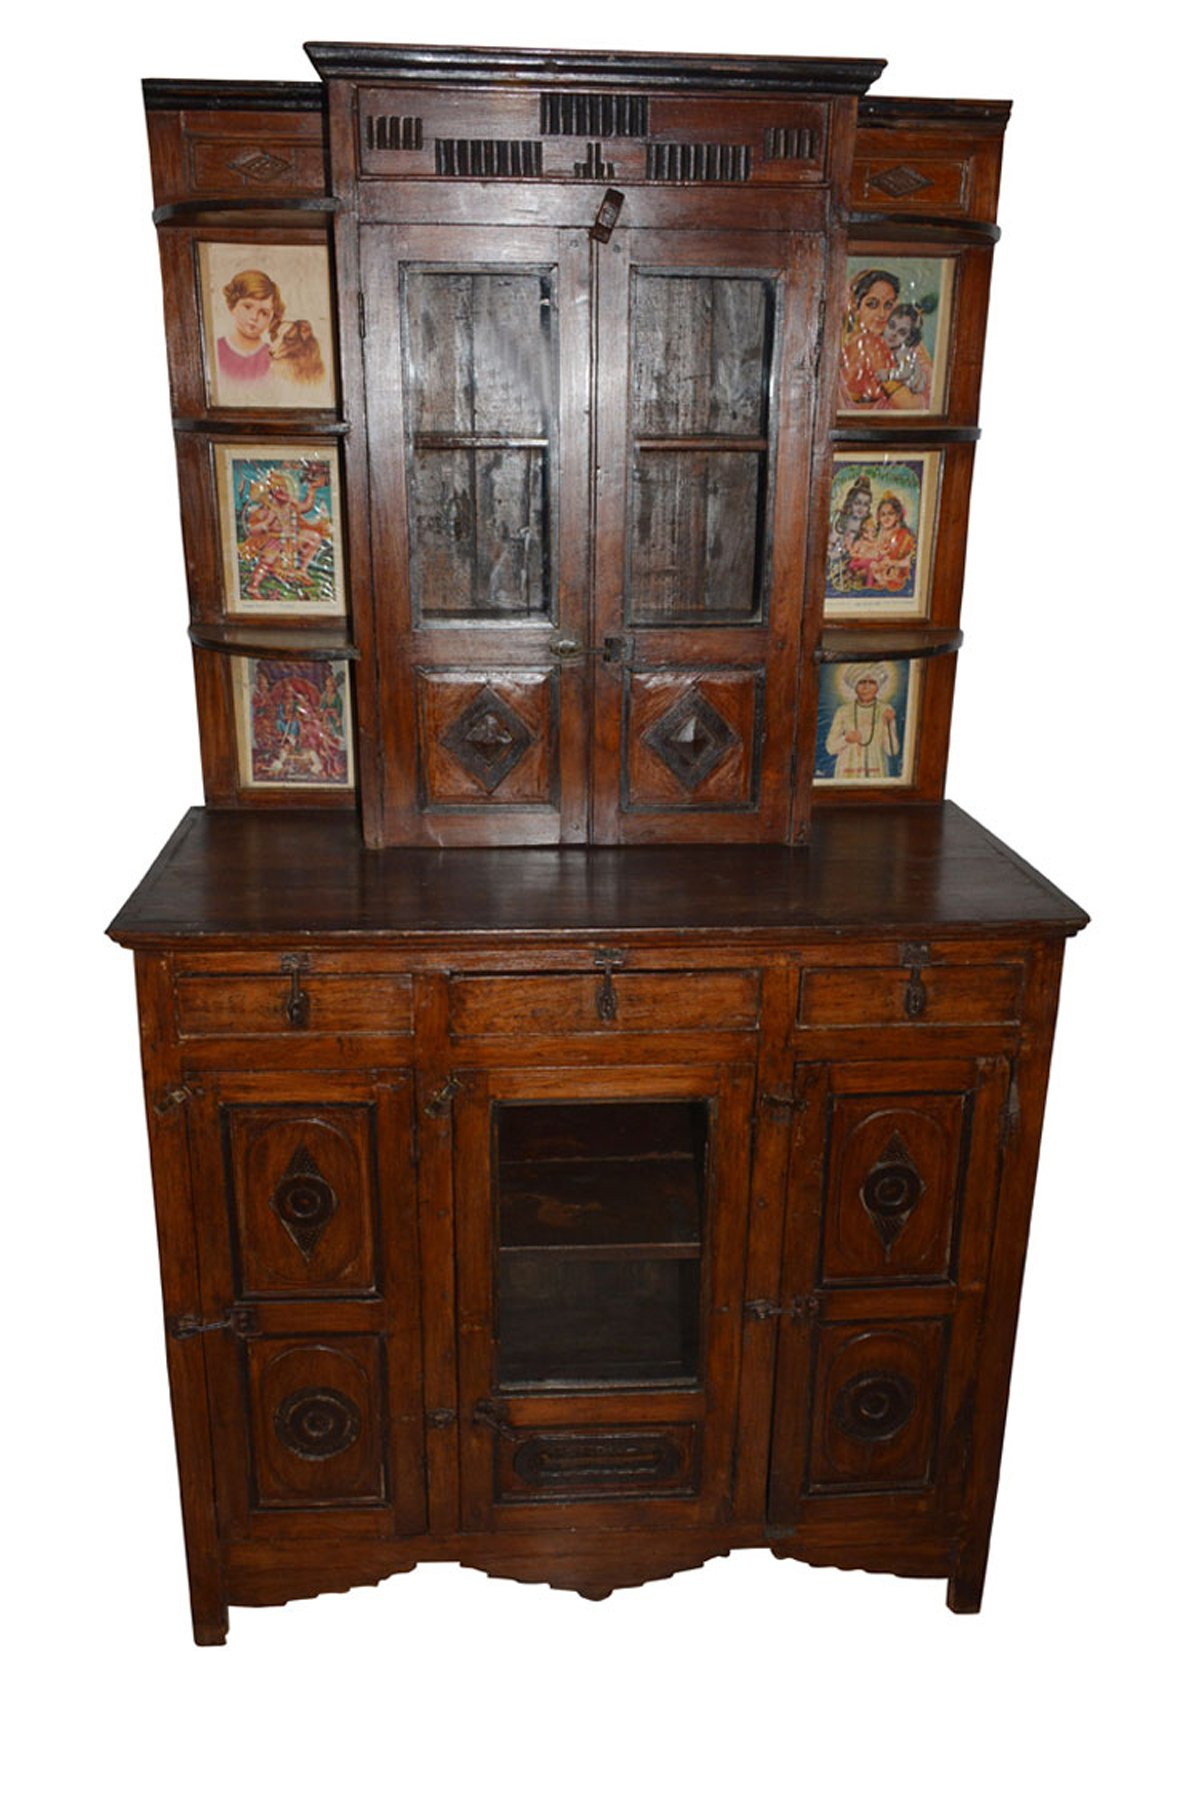 Antique Wall Cabinet Indian Paintings Boho Shabby Chic Interiors Drawer Chest Indian Furniture Teak 18c